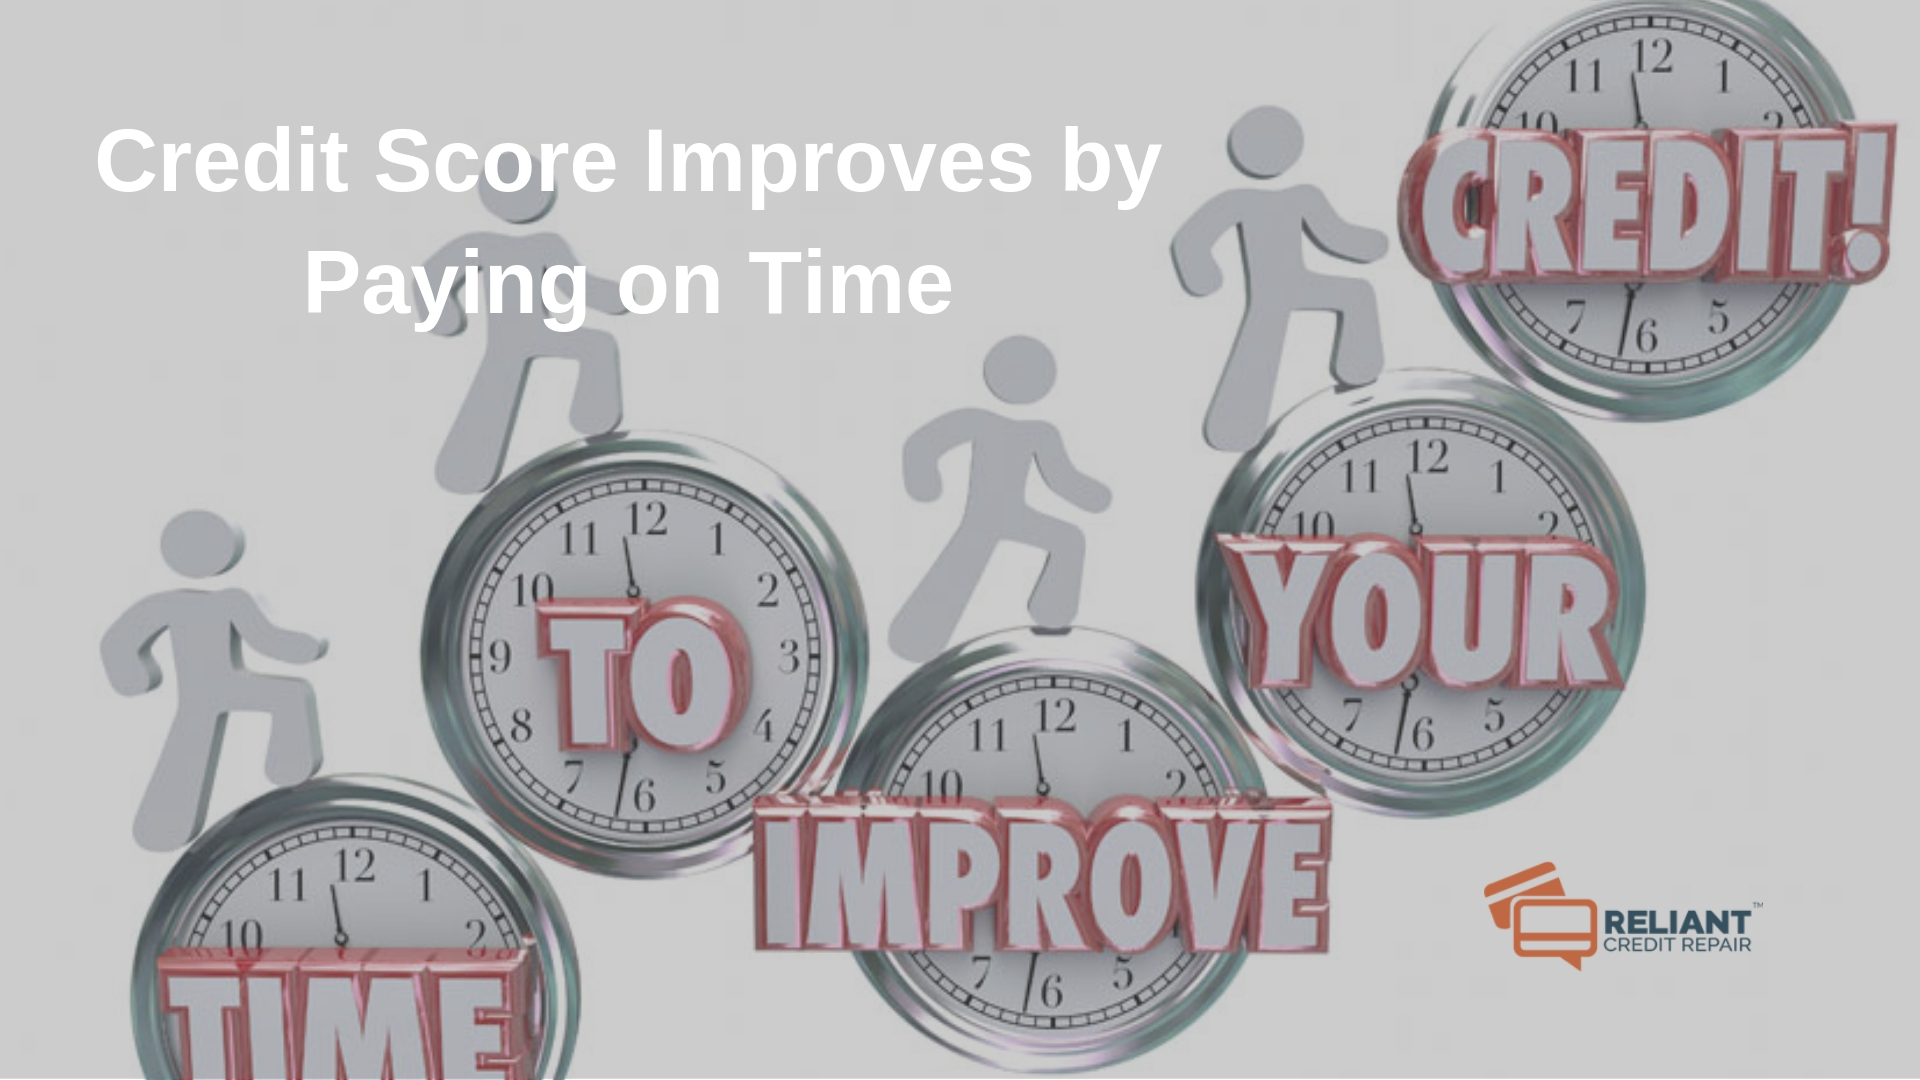 Credit Score Improves by Paying on Time